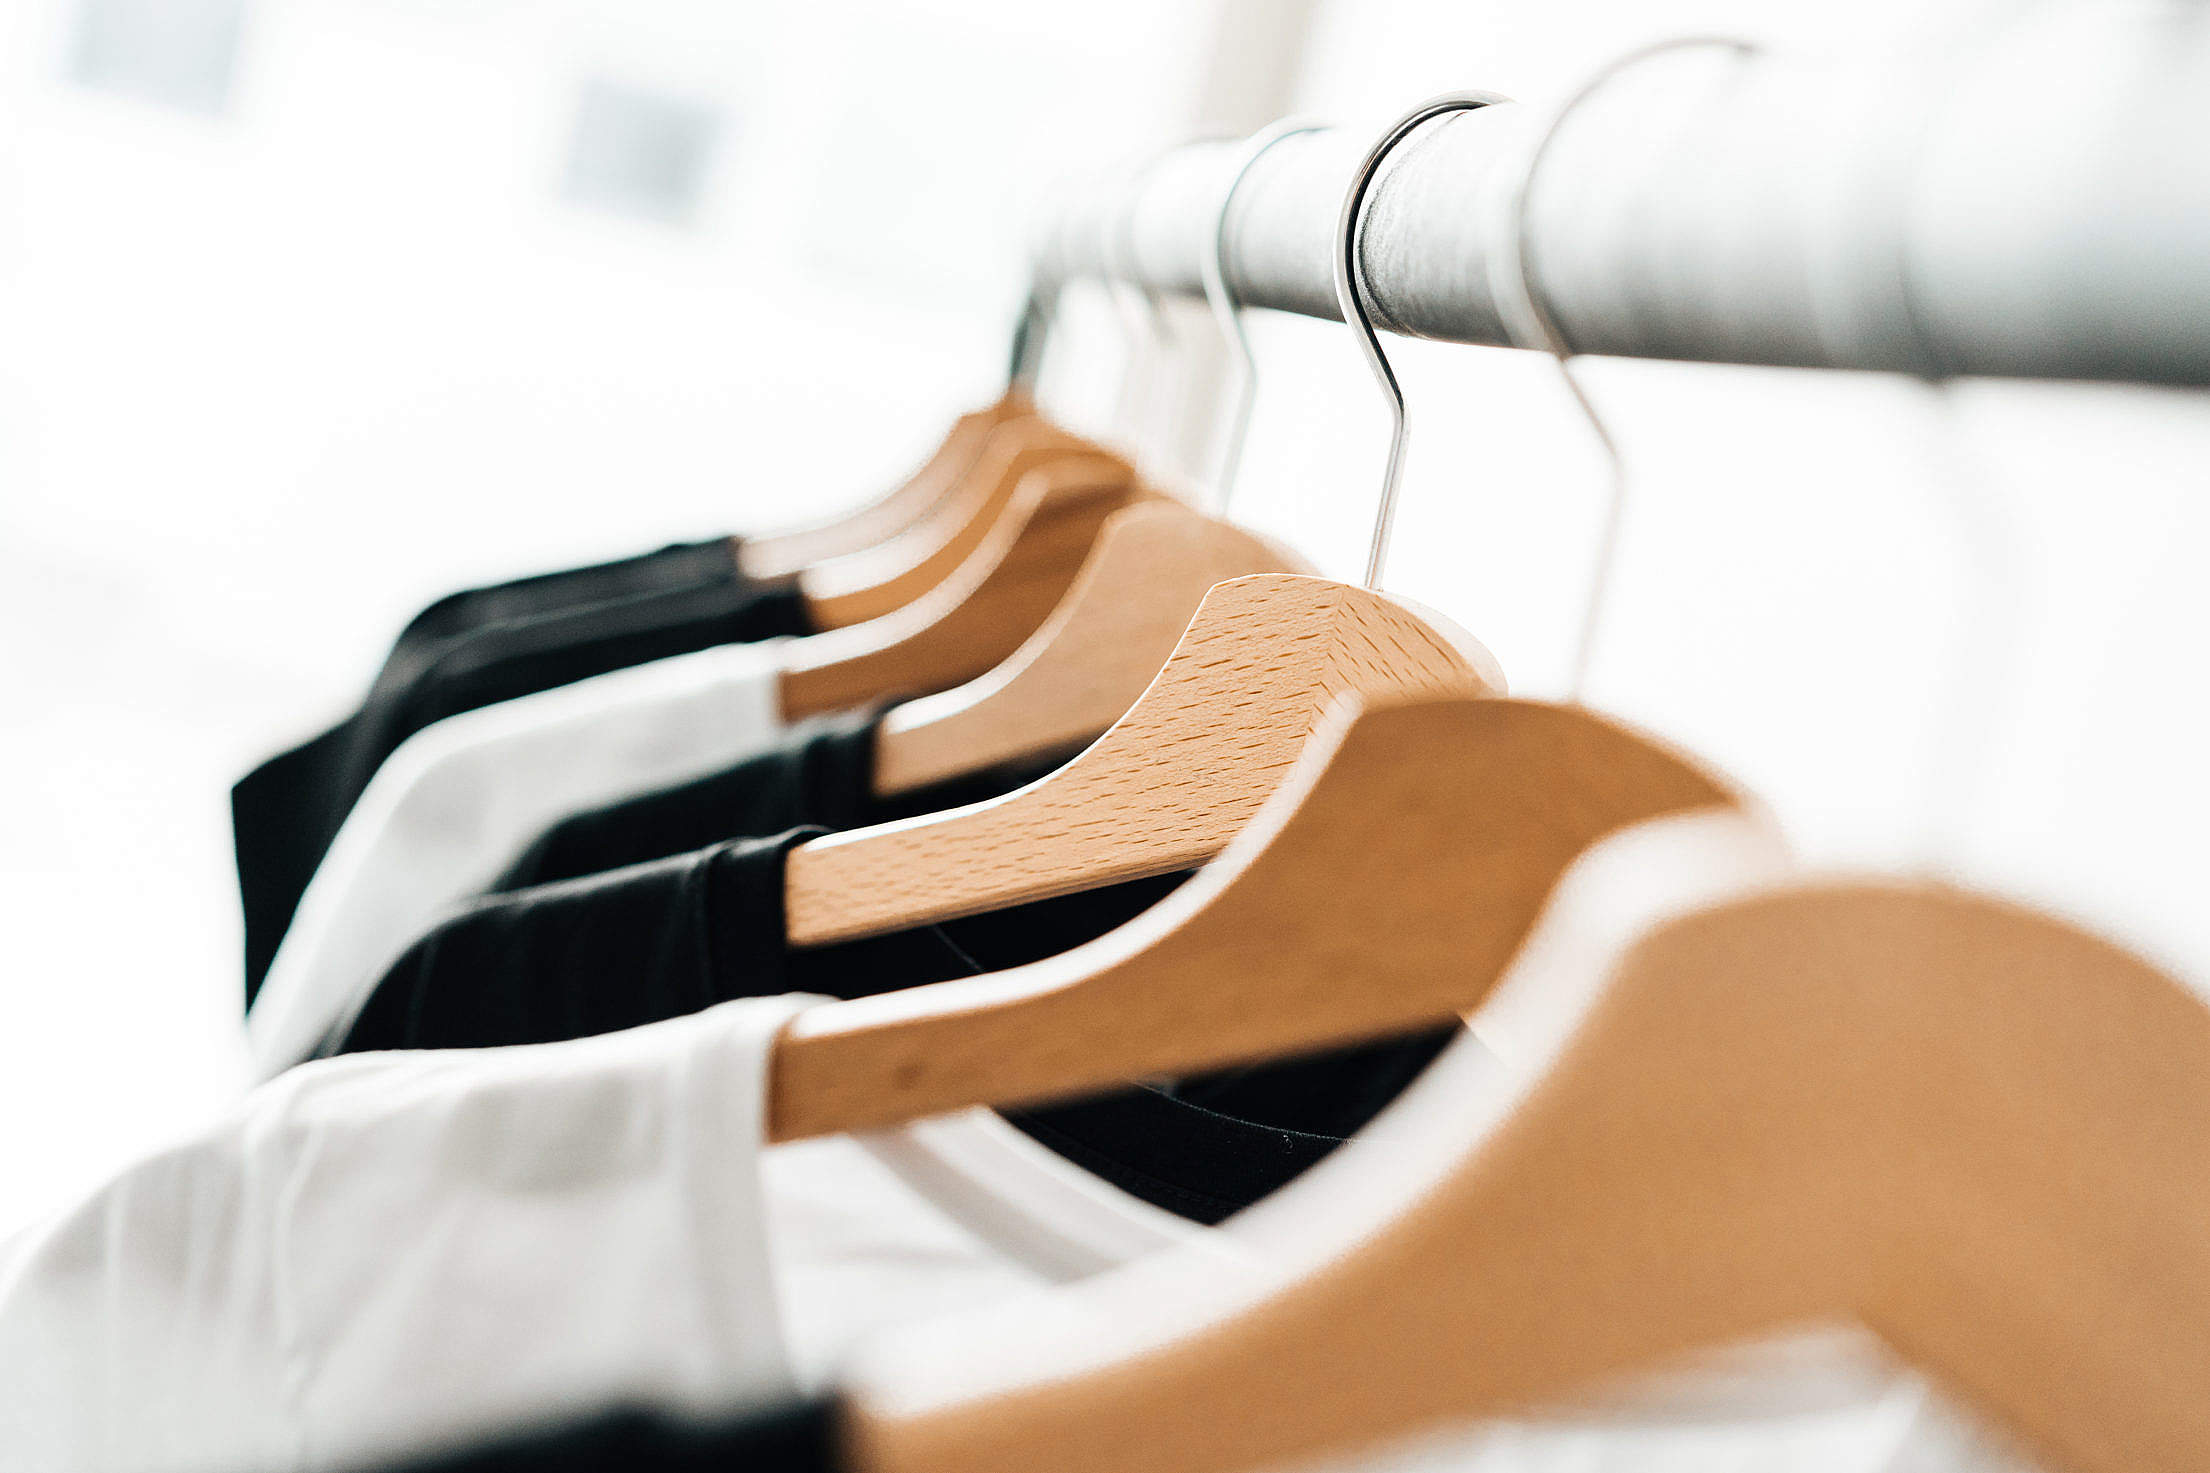 Download Wooden T-Shirt Hangers in Fashion Apparel Store Free Stock Photo